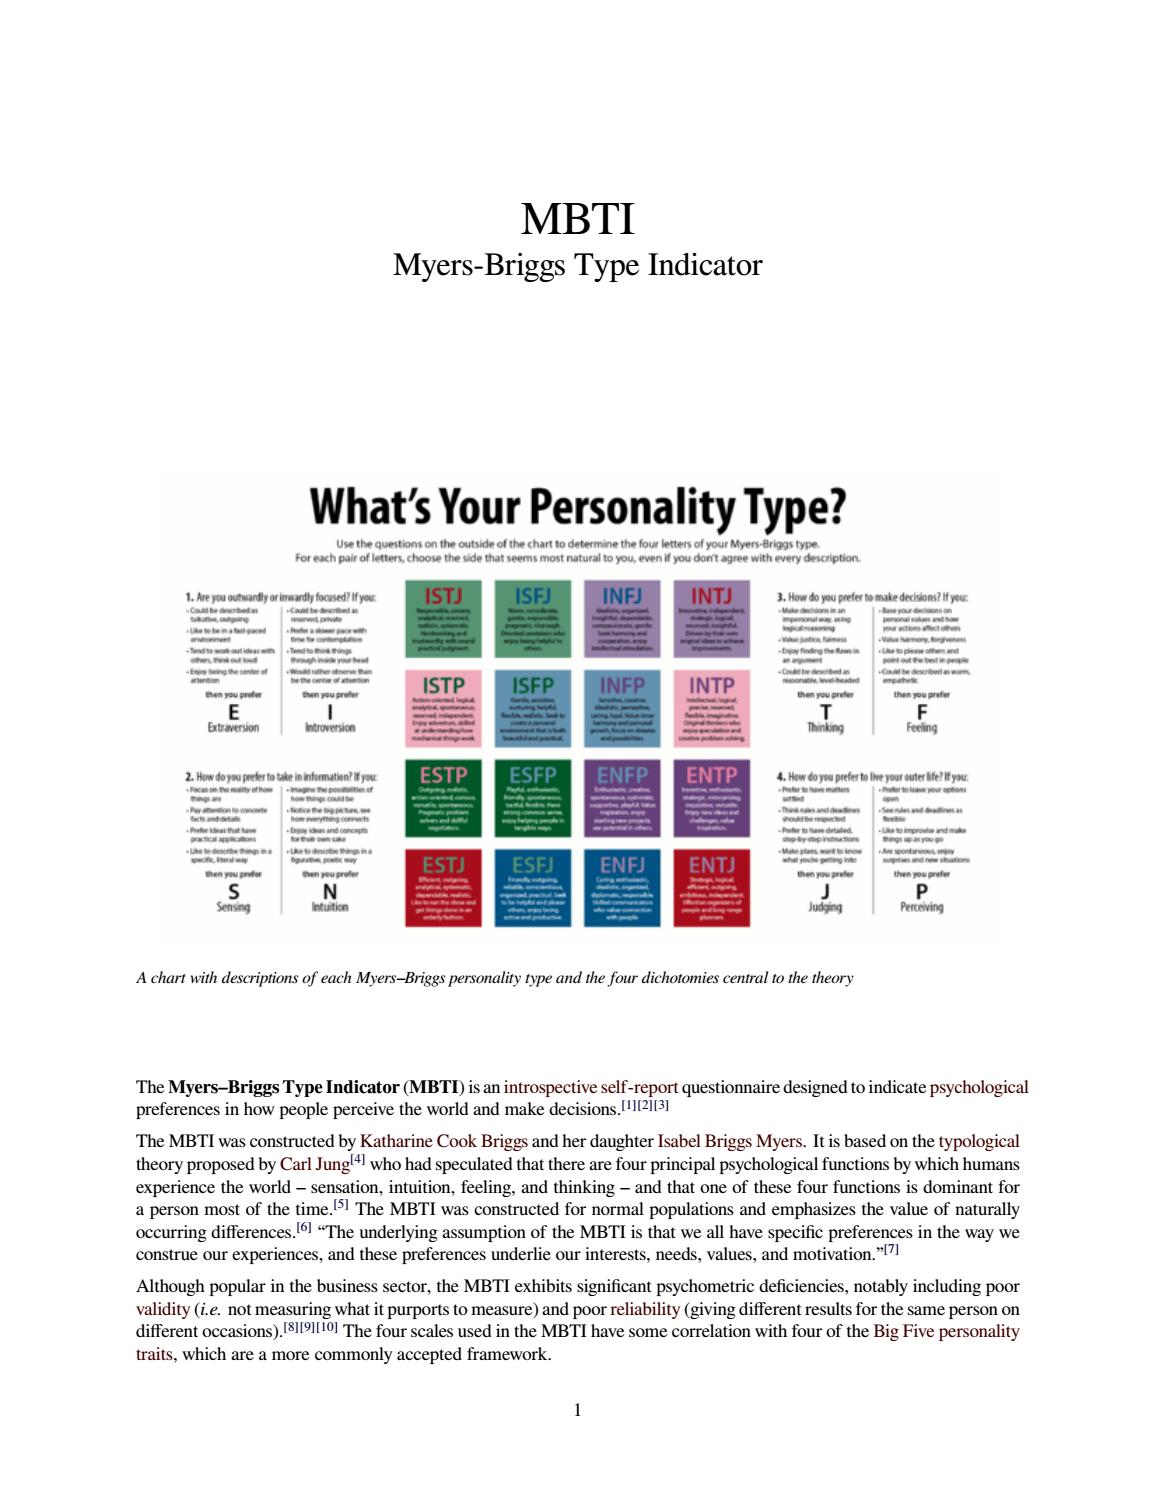 Whats Your Personality Type by cristi10hagen  Issuu